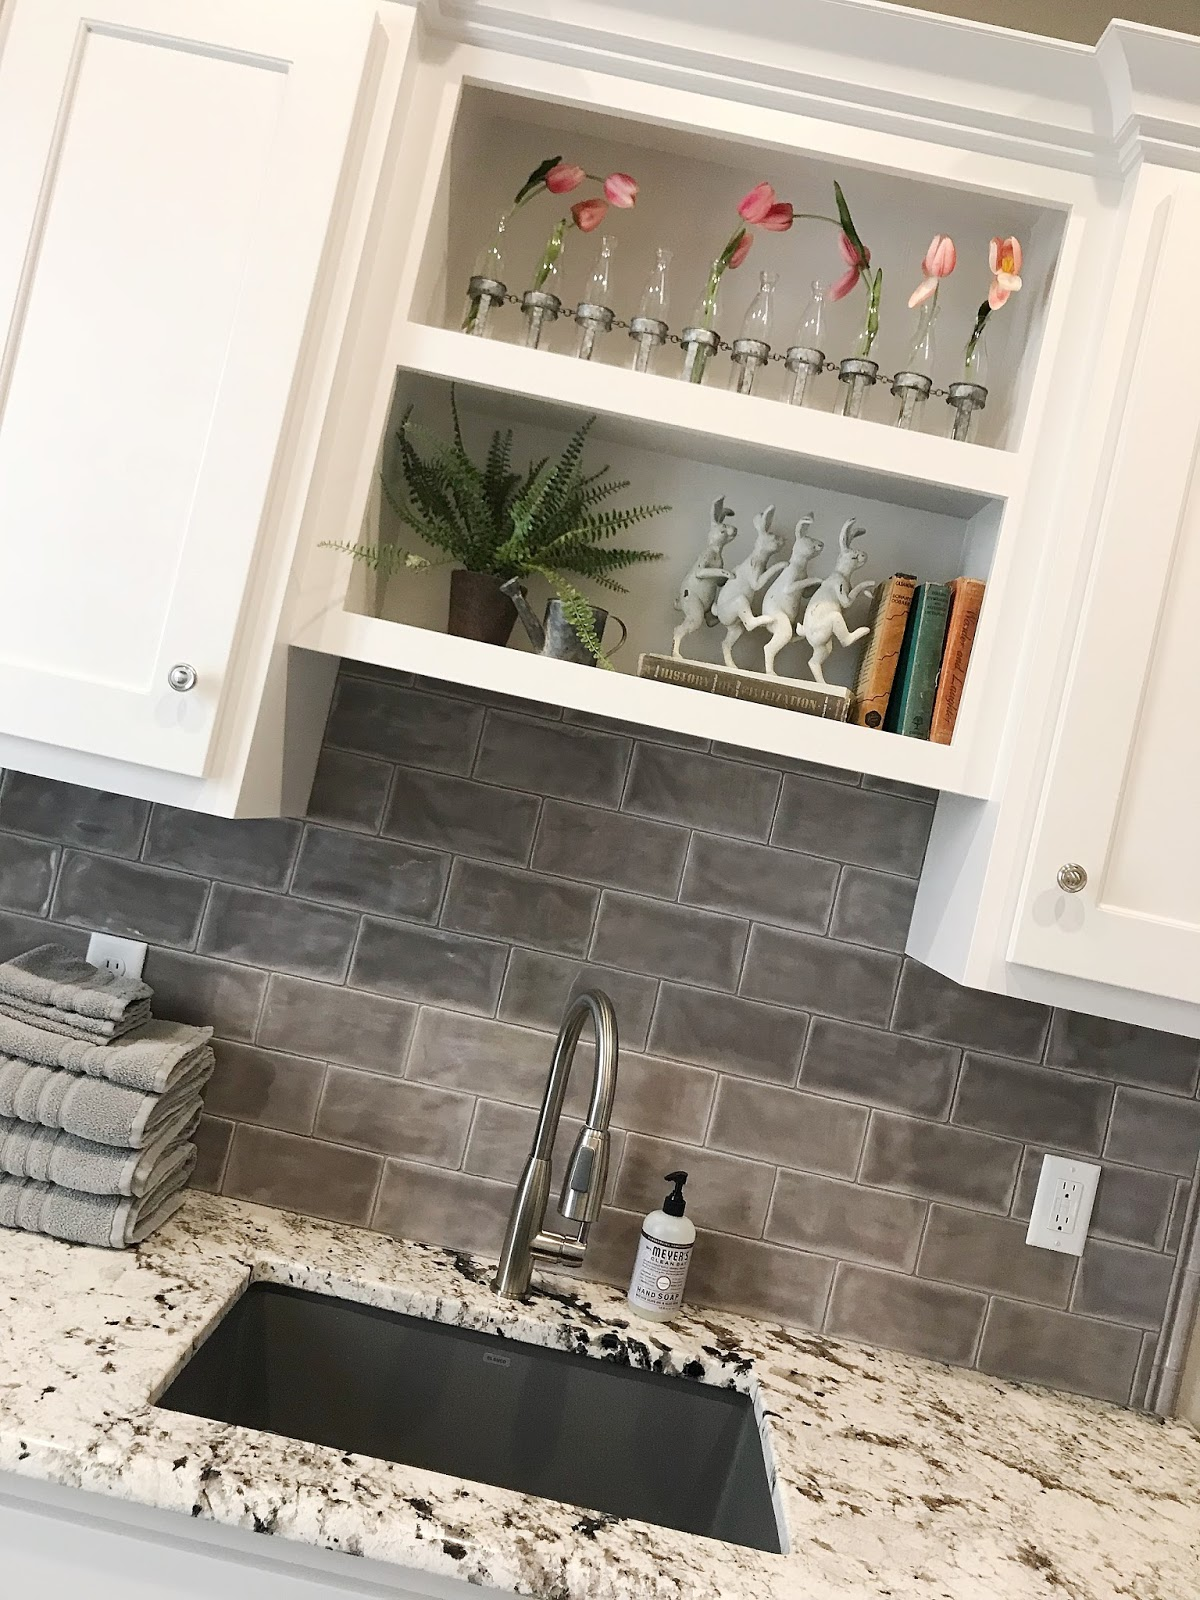 When We Were Picking Out Our Tile And Backsplash, Using This In Here Was An  Easy Decision For Me. I Had Seen It Installed Before So I Knew I Would Love  What ...